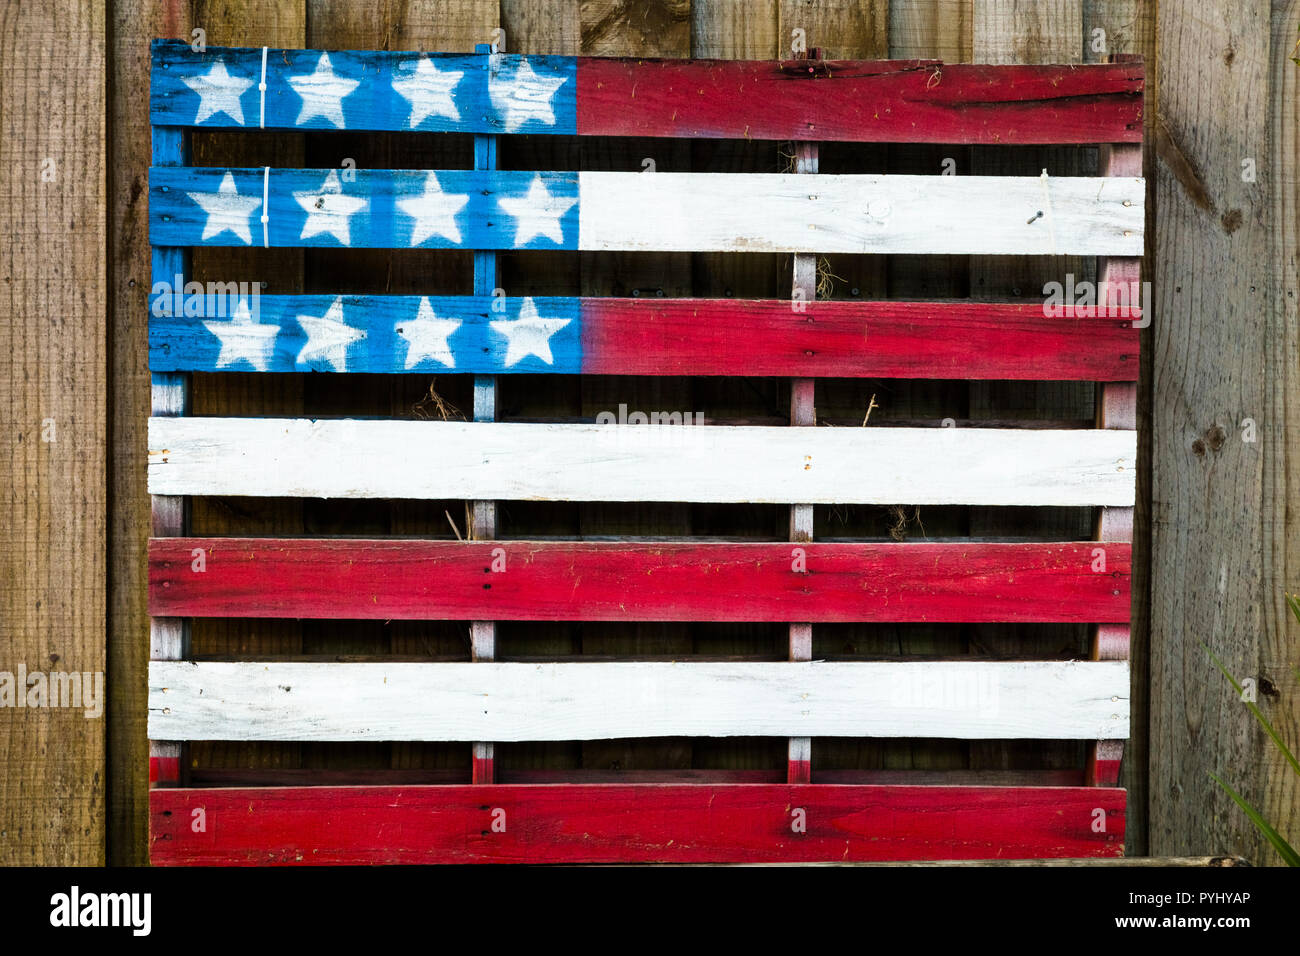 American flag painted on wood shipping pallet - Stock Image